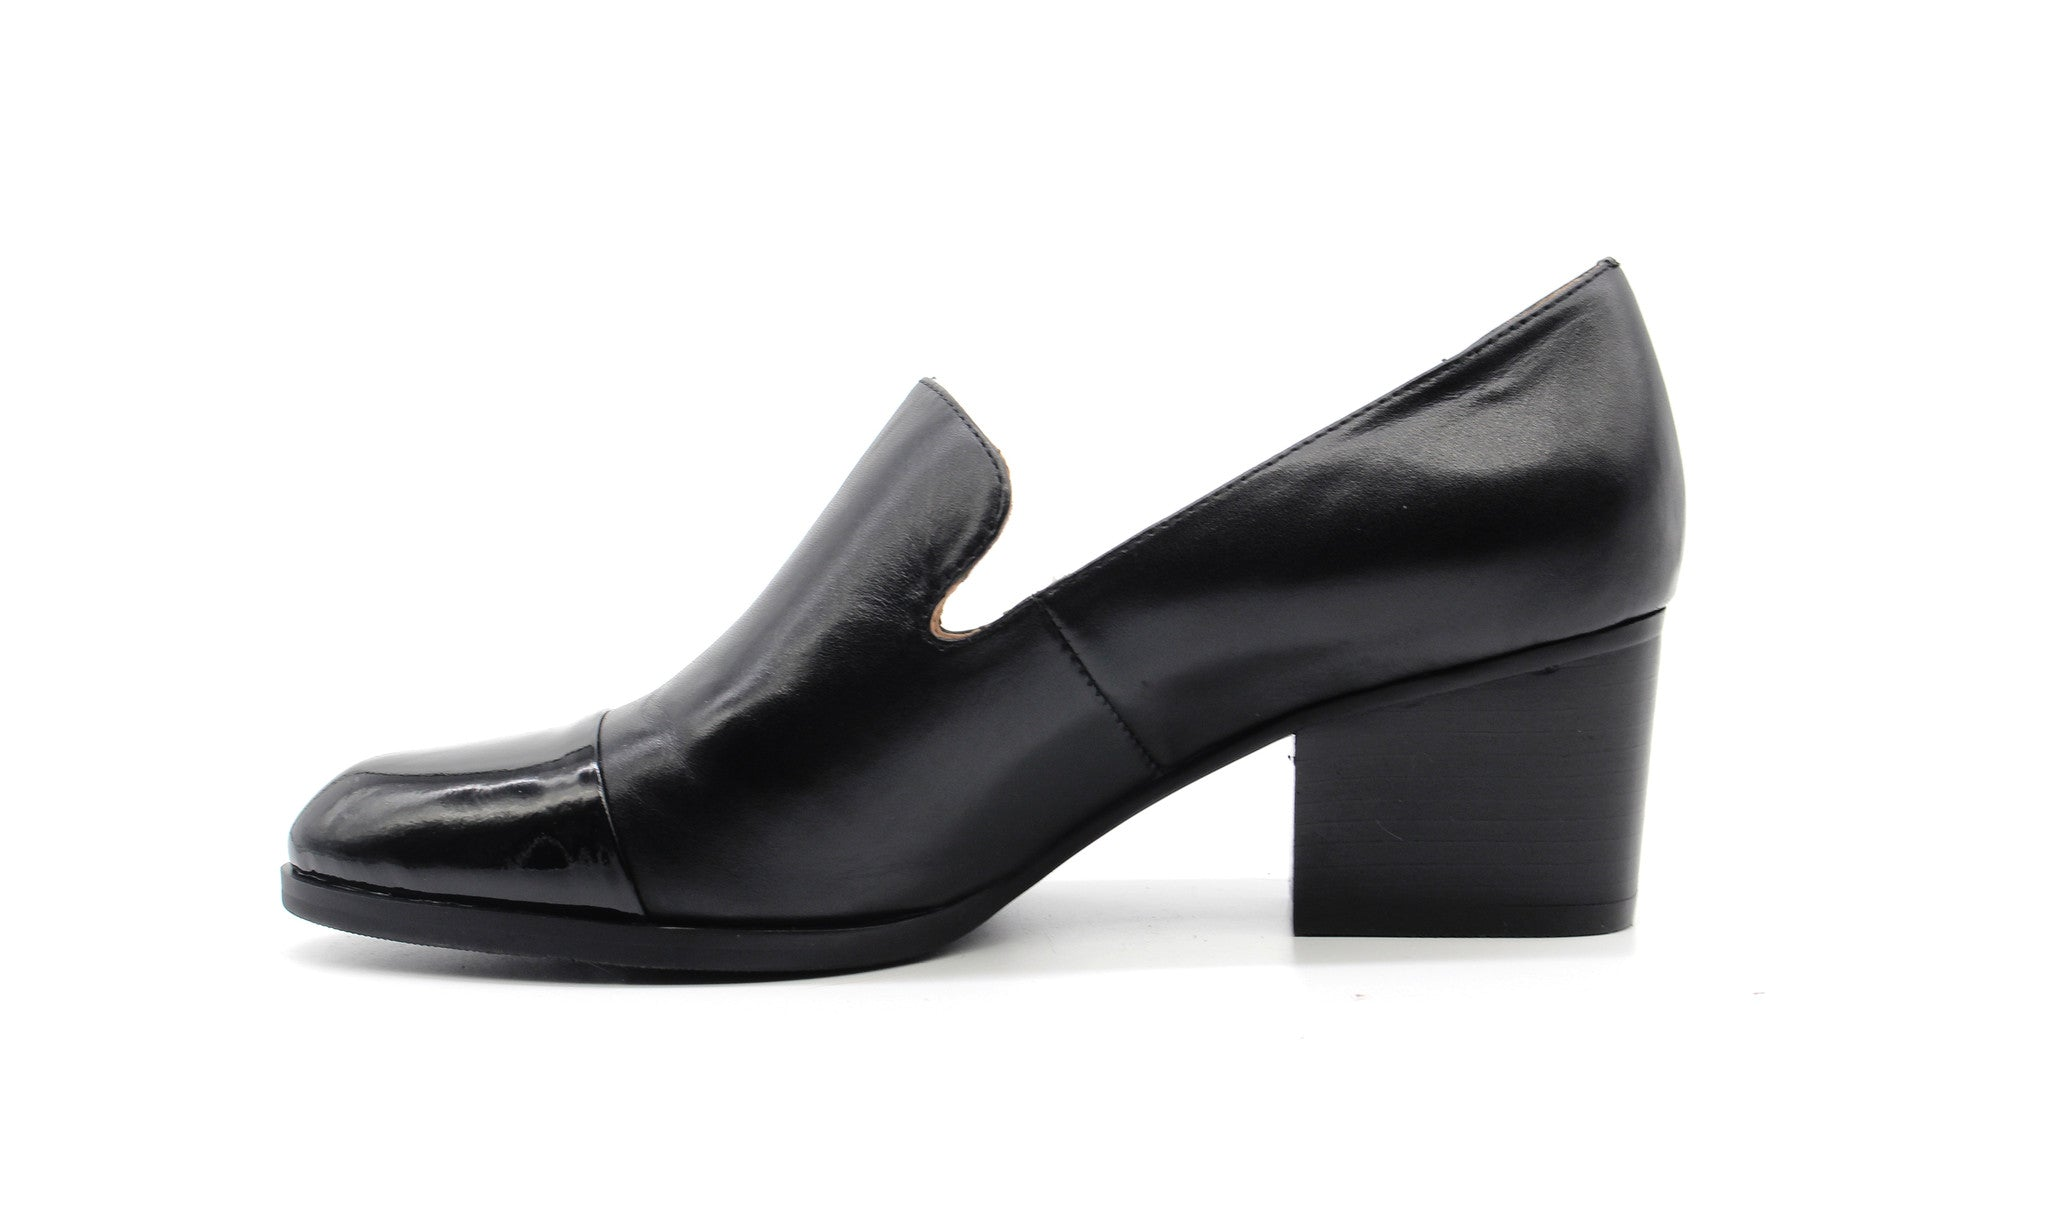 Step into the perfect pair of character shoes for your next show or practice. Shop varied heel heights and attractive styles by your favorite brands. Quality design at prices to love.